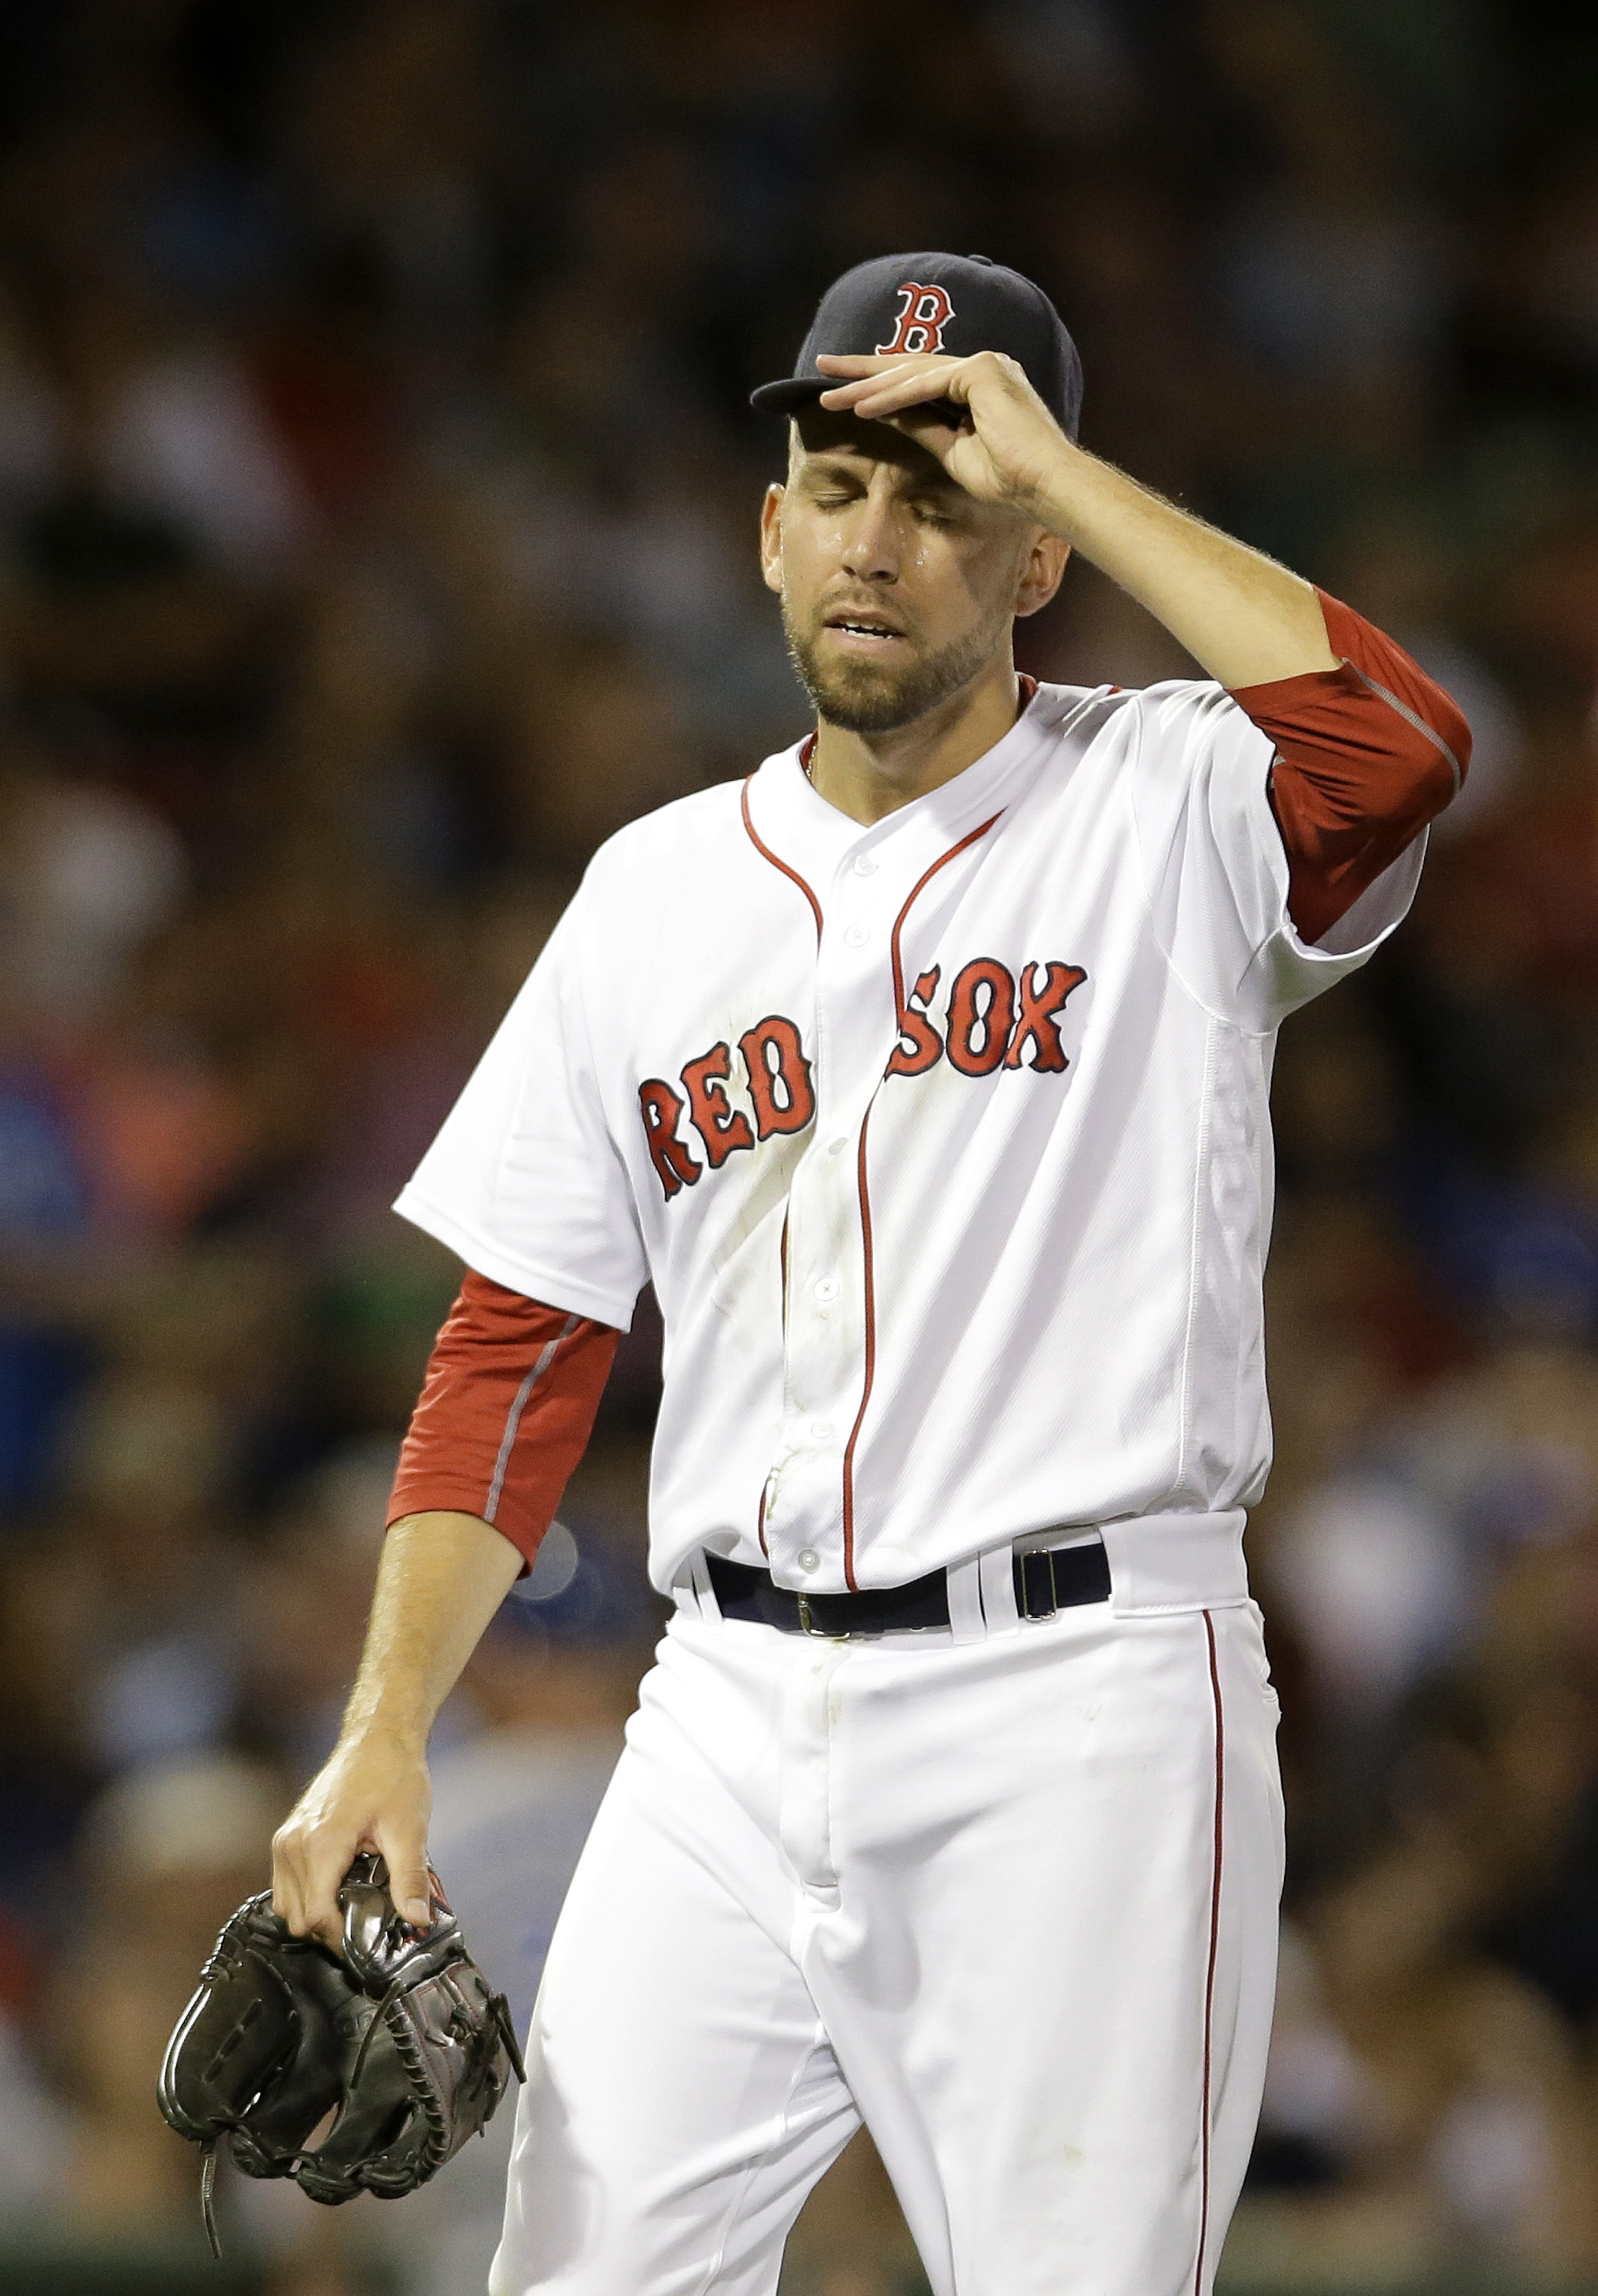 Boston Red Sox relief pitcher Matt Barnes walks toward the dugout after giving up runs to the Kansas City Royals in the sixth inning of a baseball game, Sunday, Aug. 28, 2016, in Boston. (AP Photo/Steven Senne)